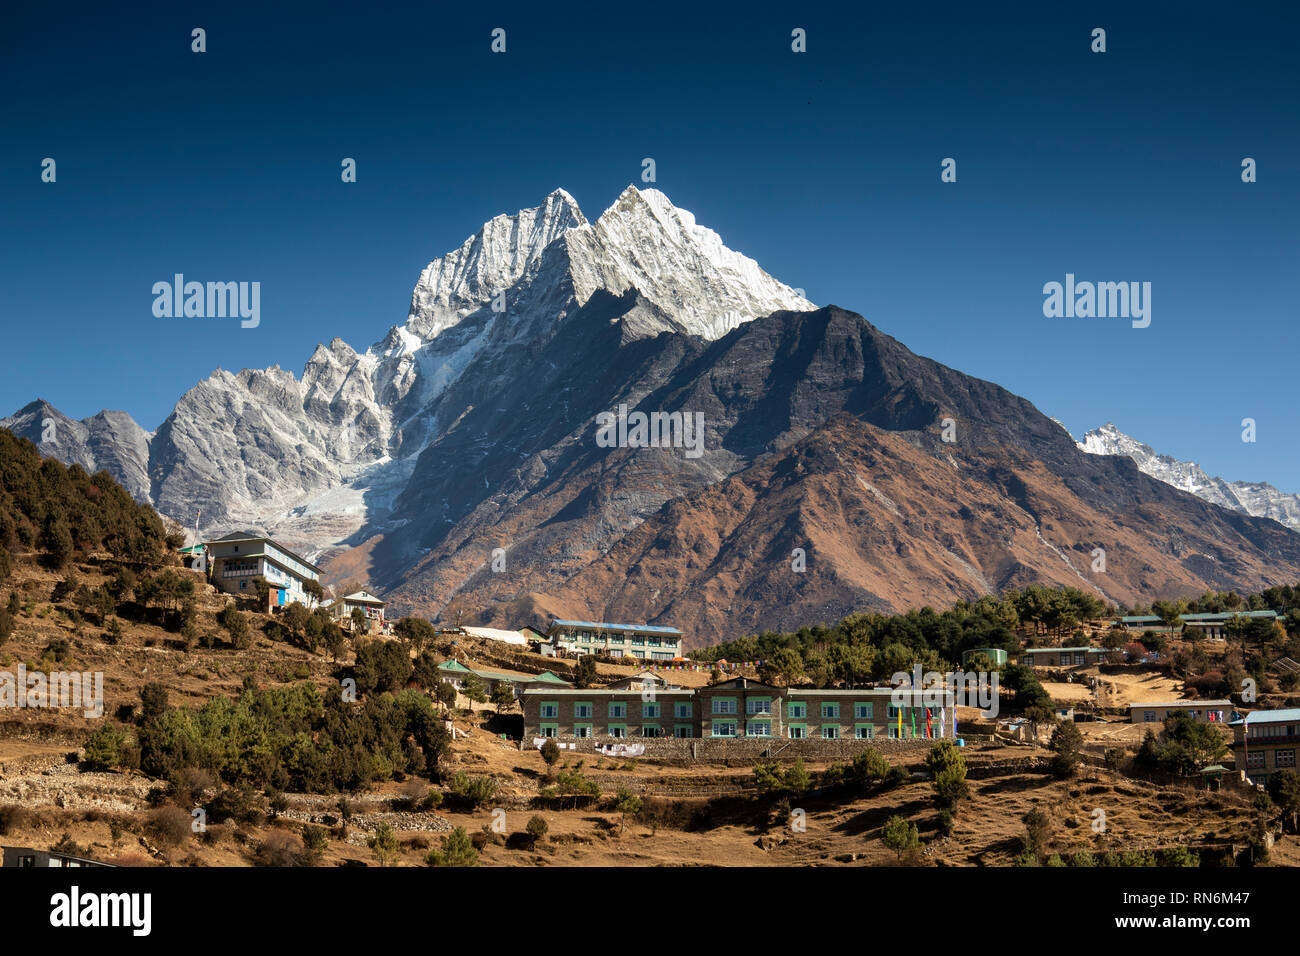 Nepal, Namche Bazaar, snow capped Thamserkhu peak above hilltop houses, Yeti Mountain Home and Hill Top Lodge and Restaurant - Stock Image